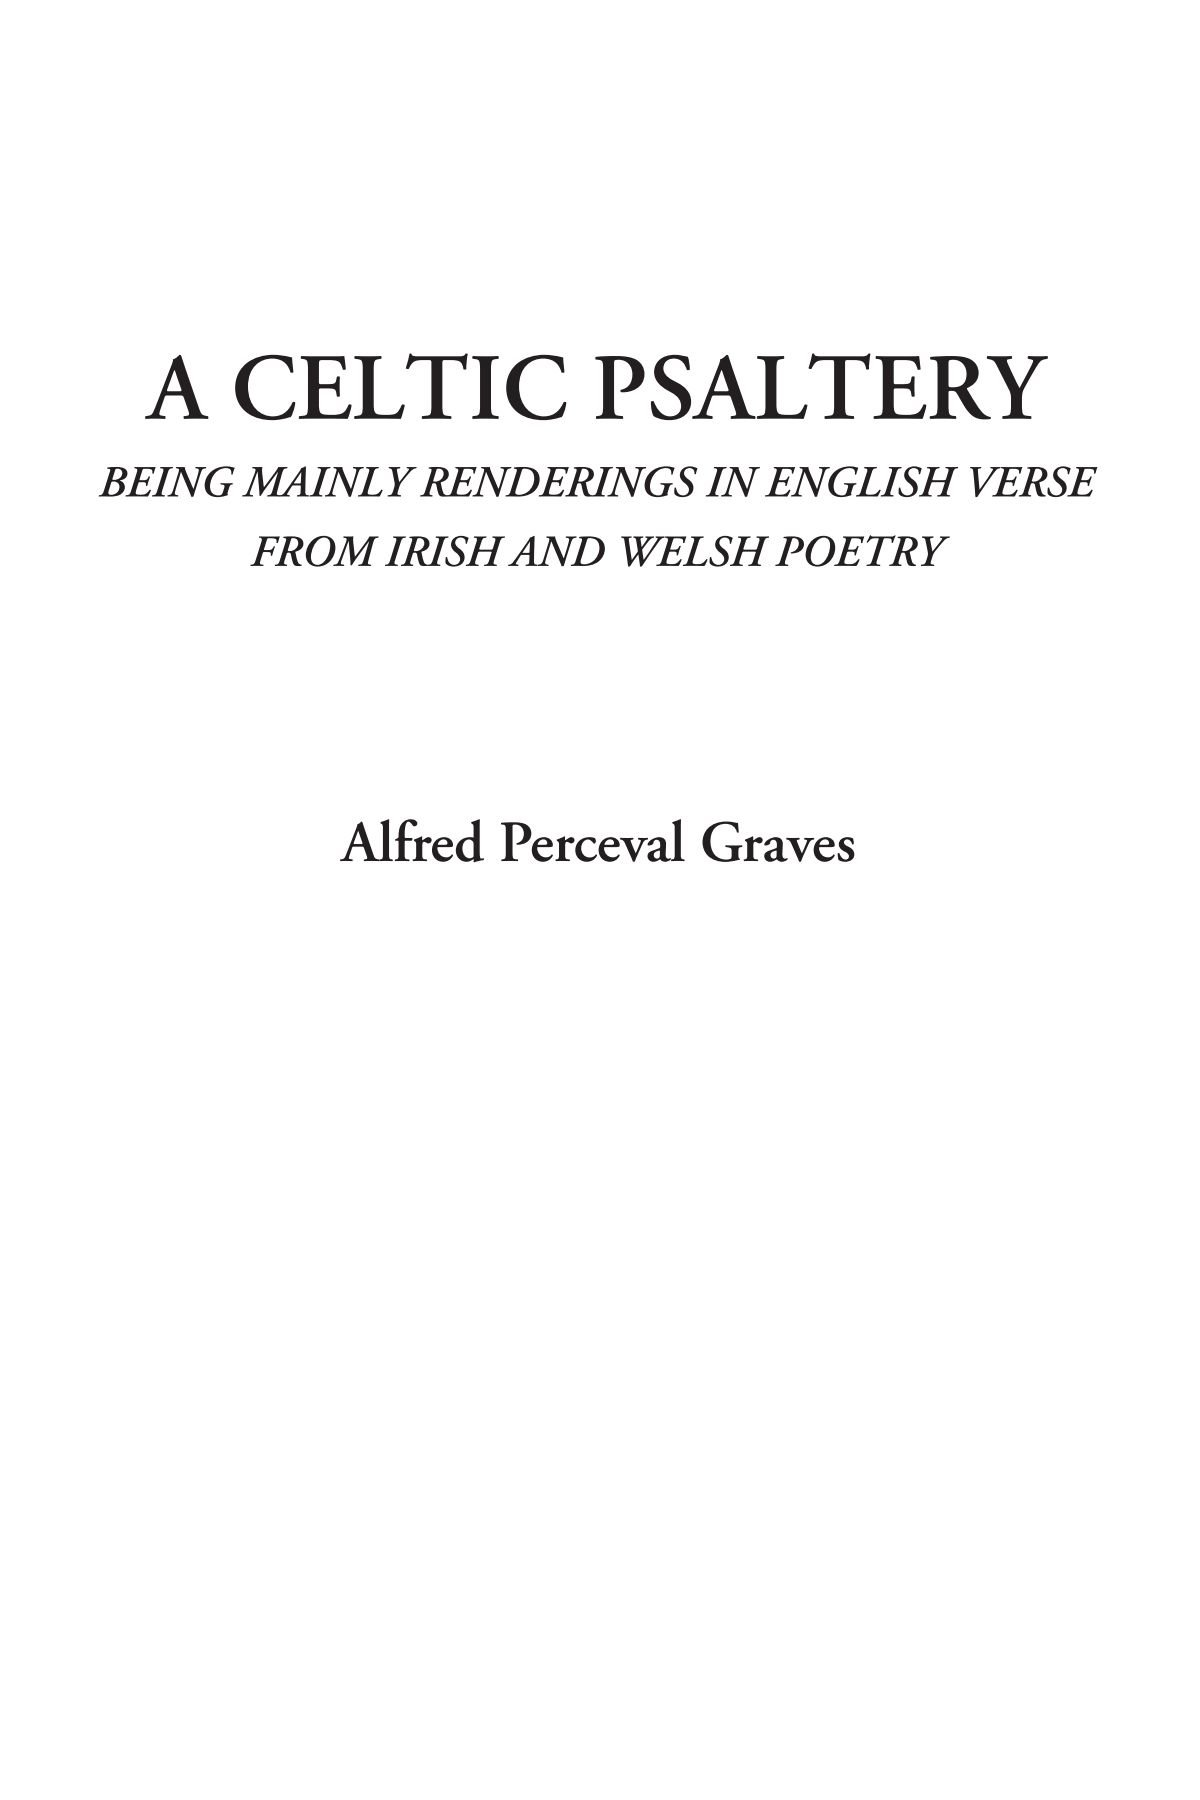 A Celtic Psaltery (Being Mainly Renderings in English Verse from Irish and Welsh Poetry) PDF